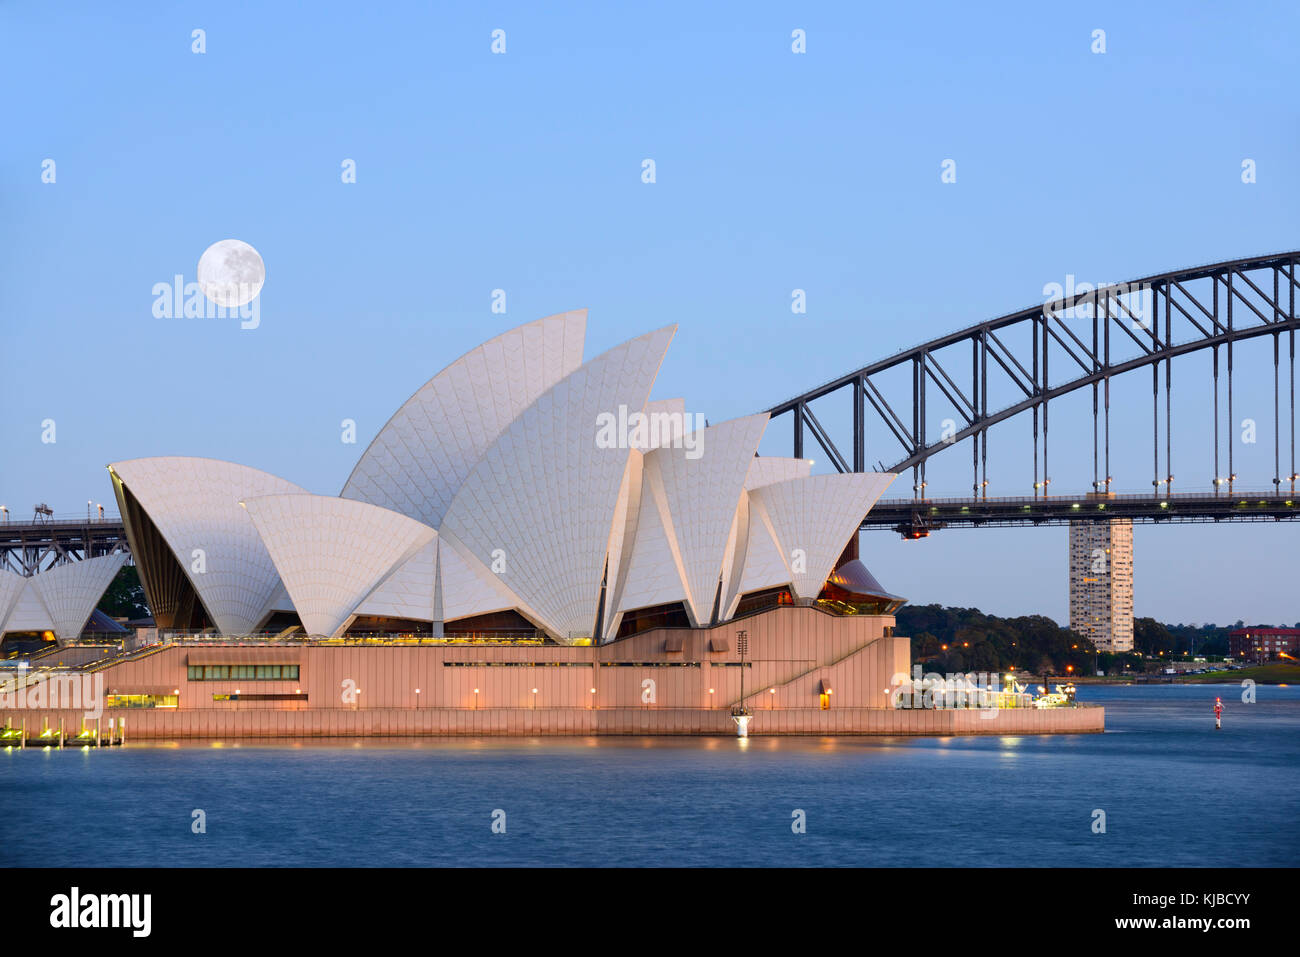 Image of the full super Moon shining right before sunrise over the Sydney Opera House in Sydney, Australia as it Stock Photo